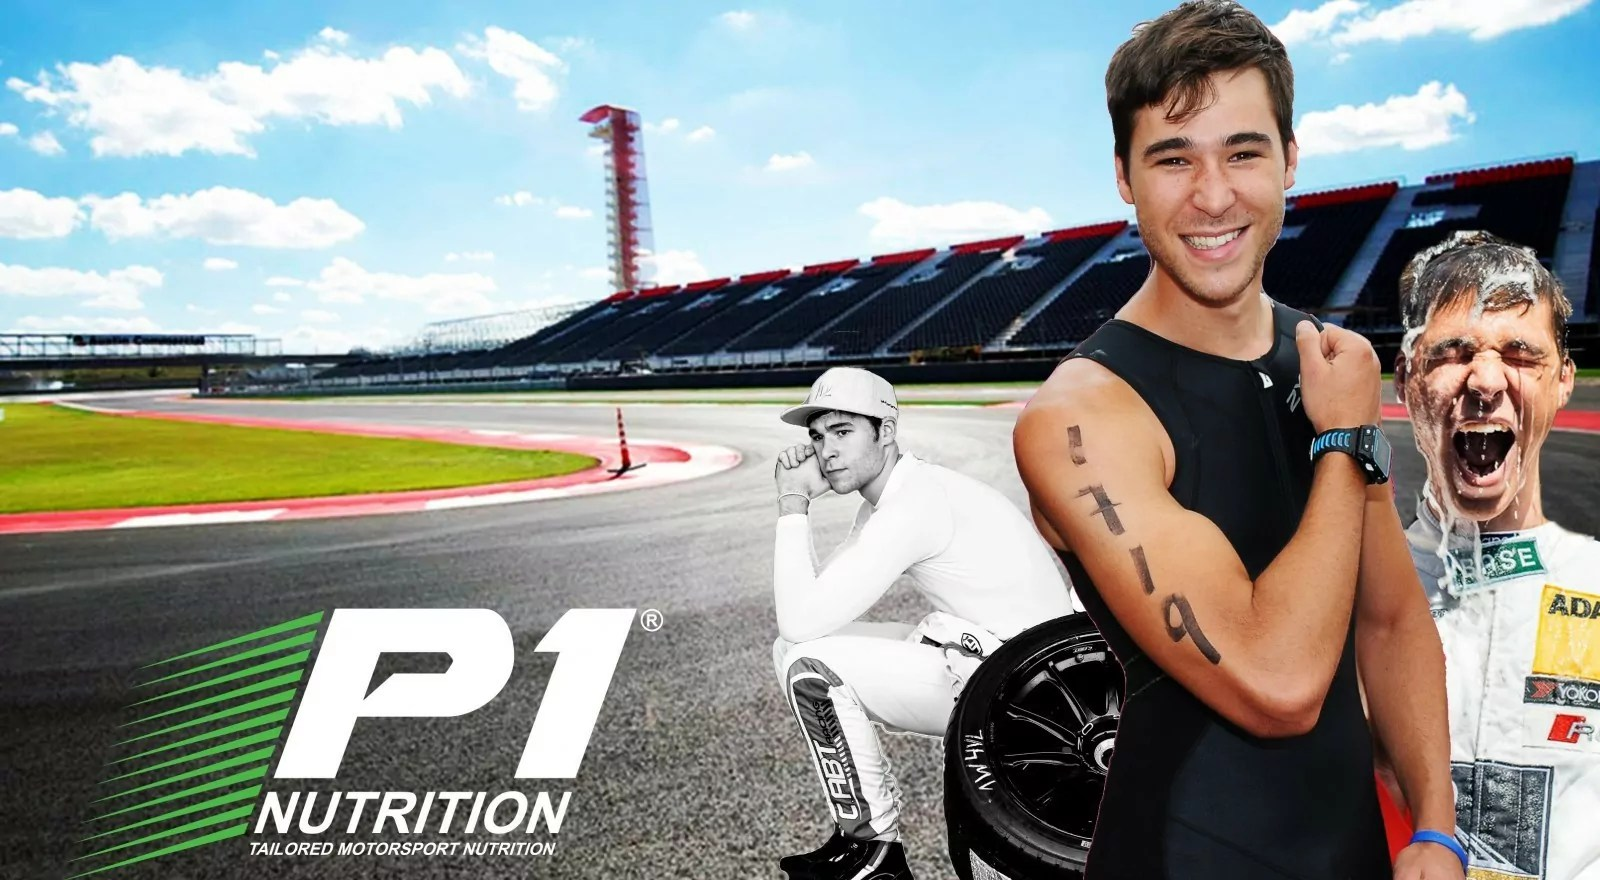 KELVIN VAN DER LINDE  SIGNS AS P1 NUTRITION ATHLETE